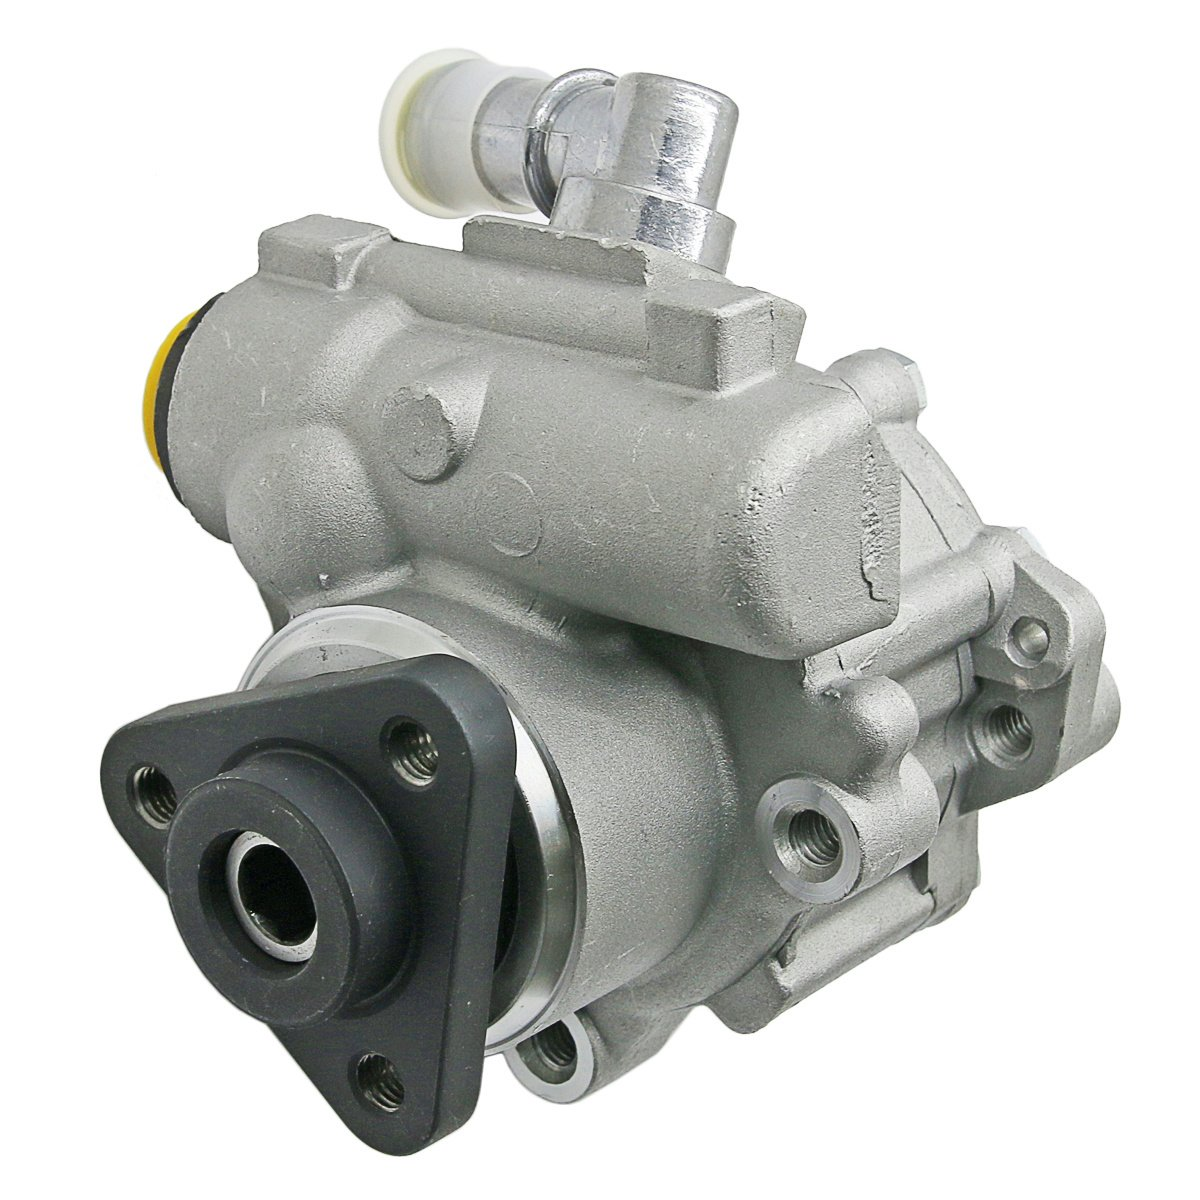 Amazon.com: Power Steering Pump For BMW E36 E38 E39 325tds 525tds 725tds 2.5L M51D25 Diesel 32411093400: Automotive